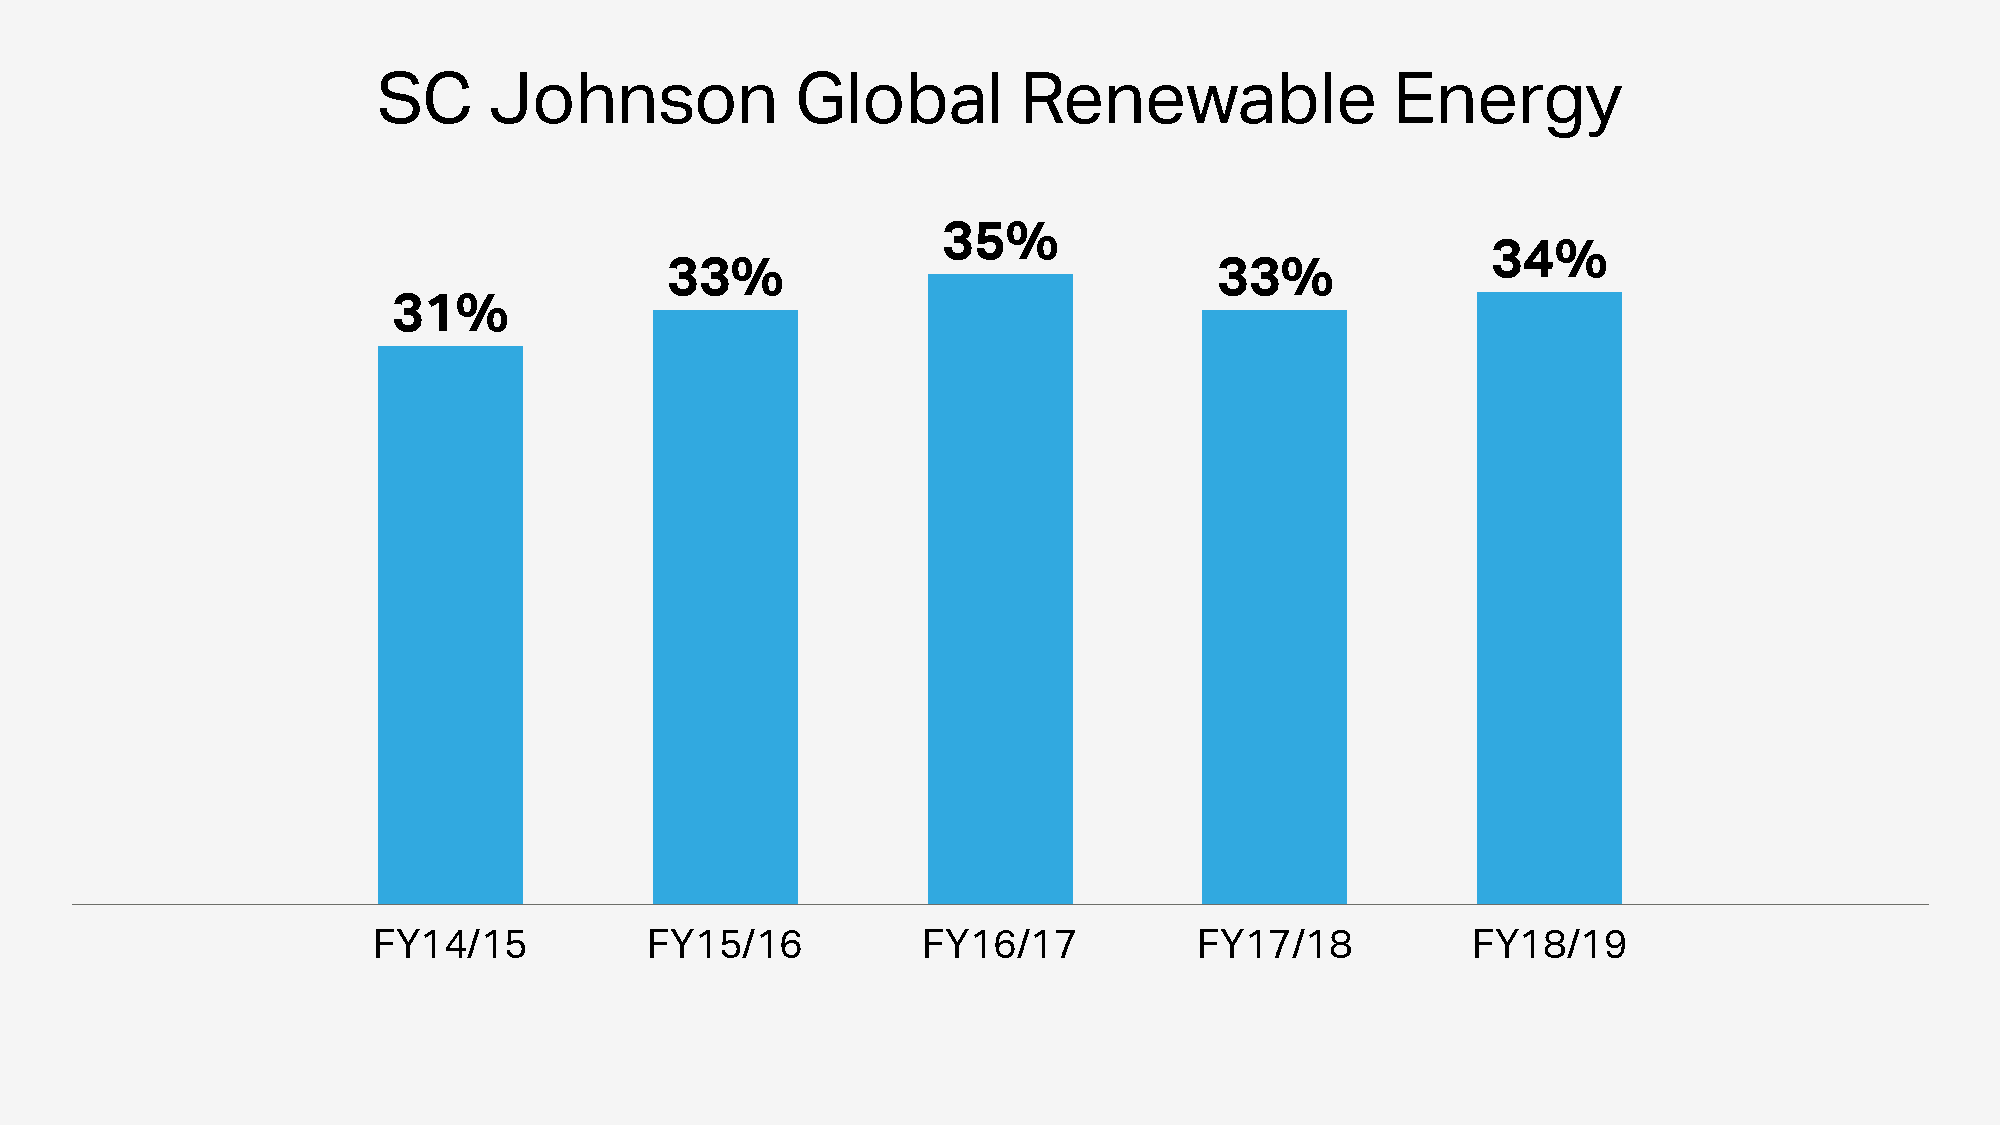 SC Johnson Global Renewable Energy Over the Years